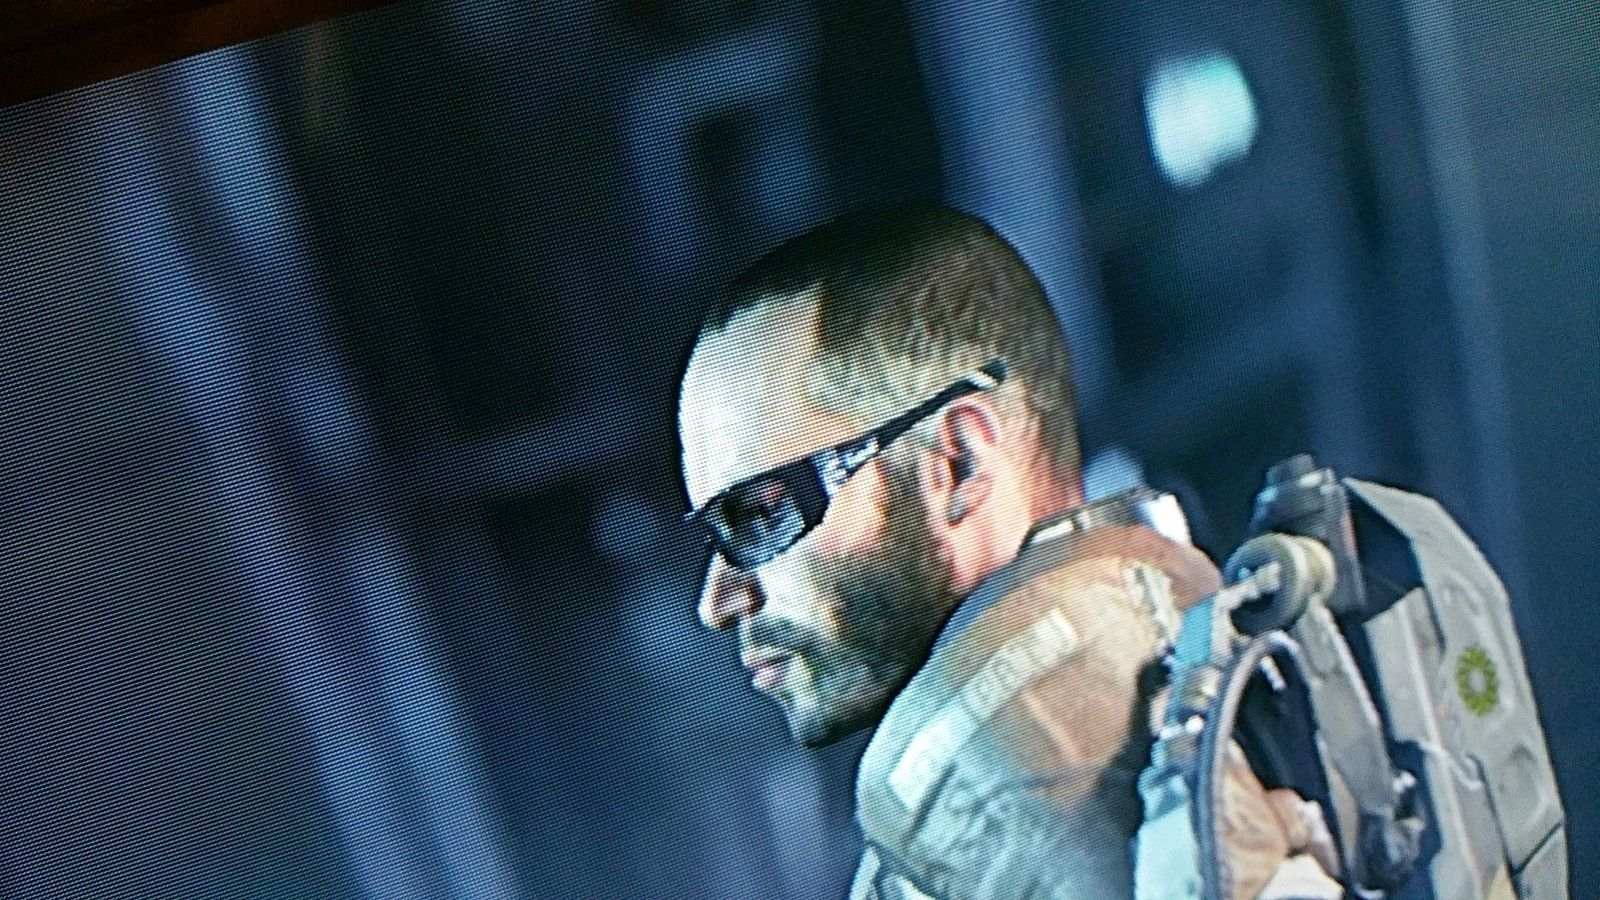 Oakley Made It Into The New Call Of Duty A Game - uploadfromtaptalk1415211319159.jpg